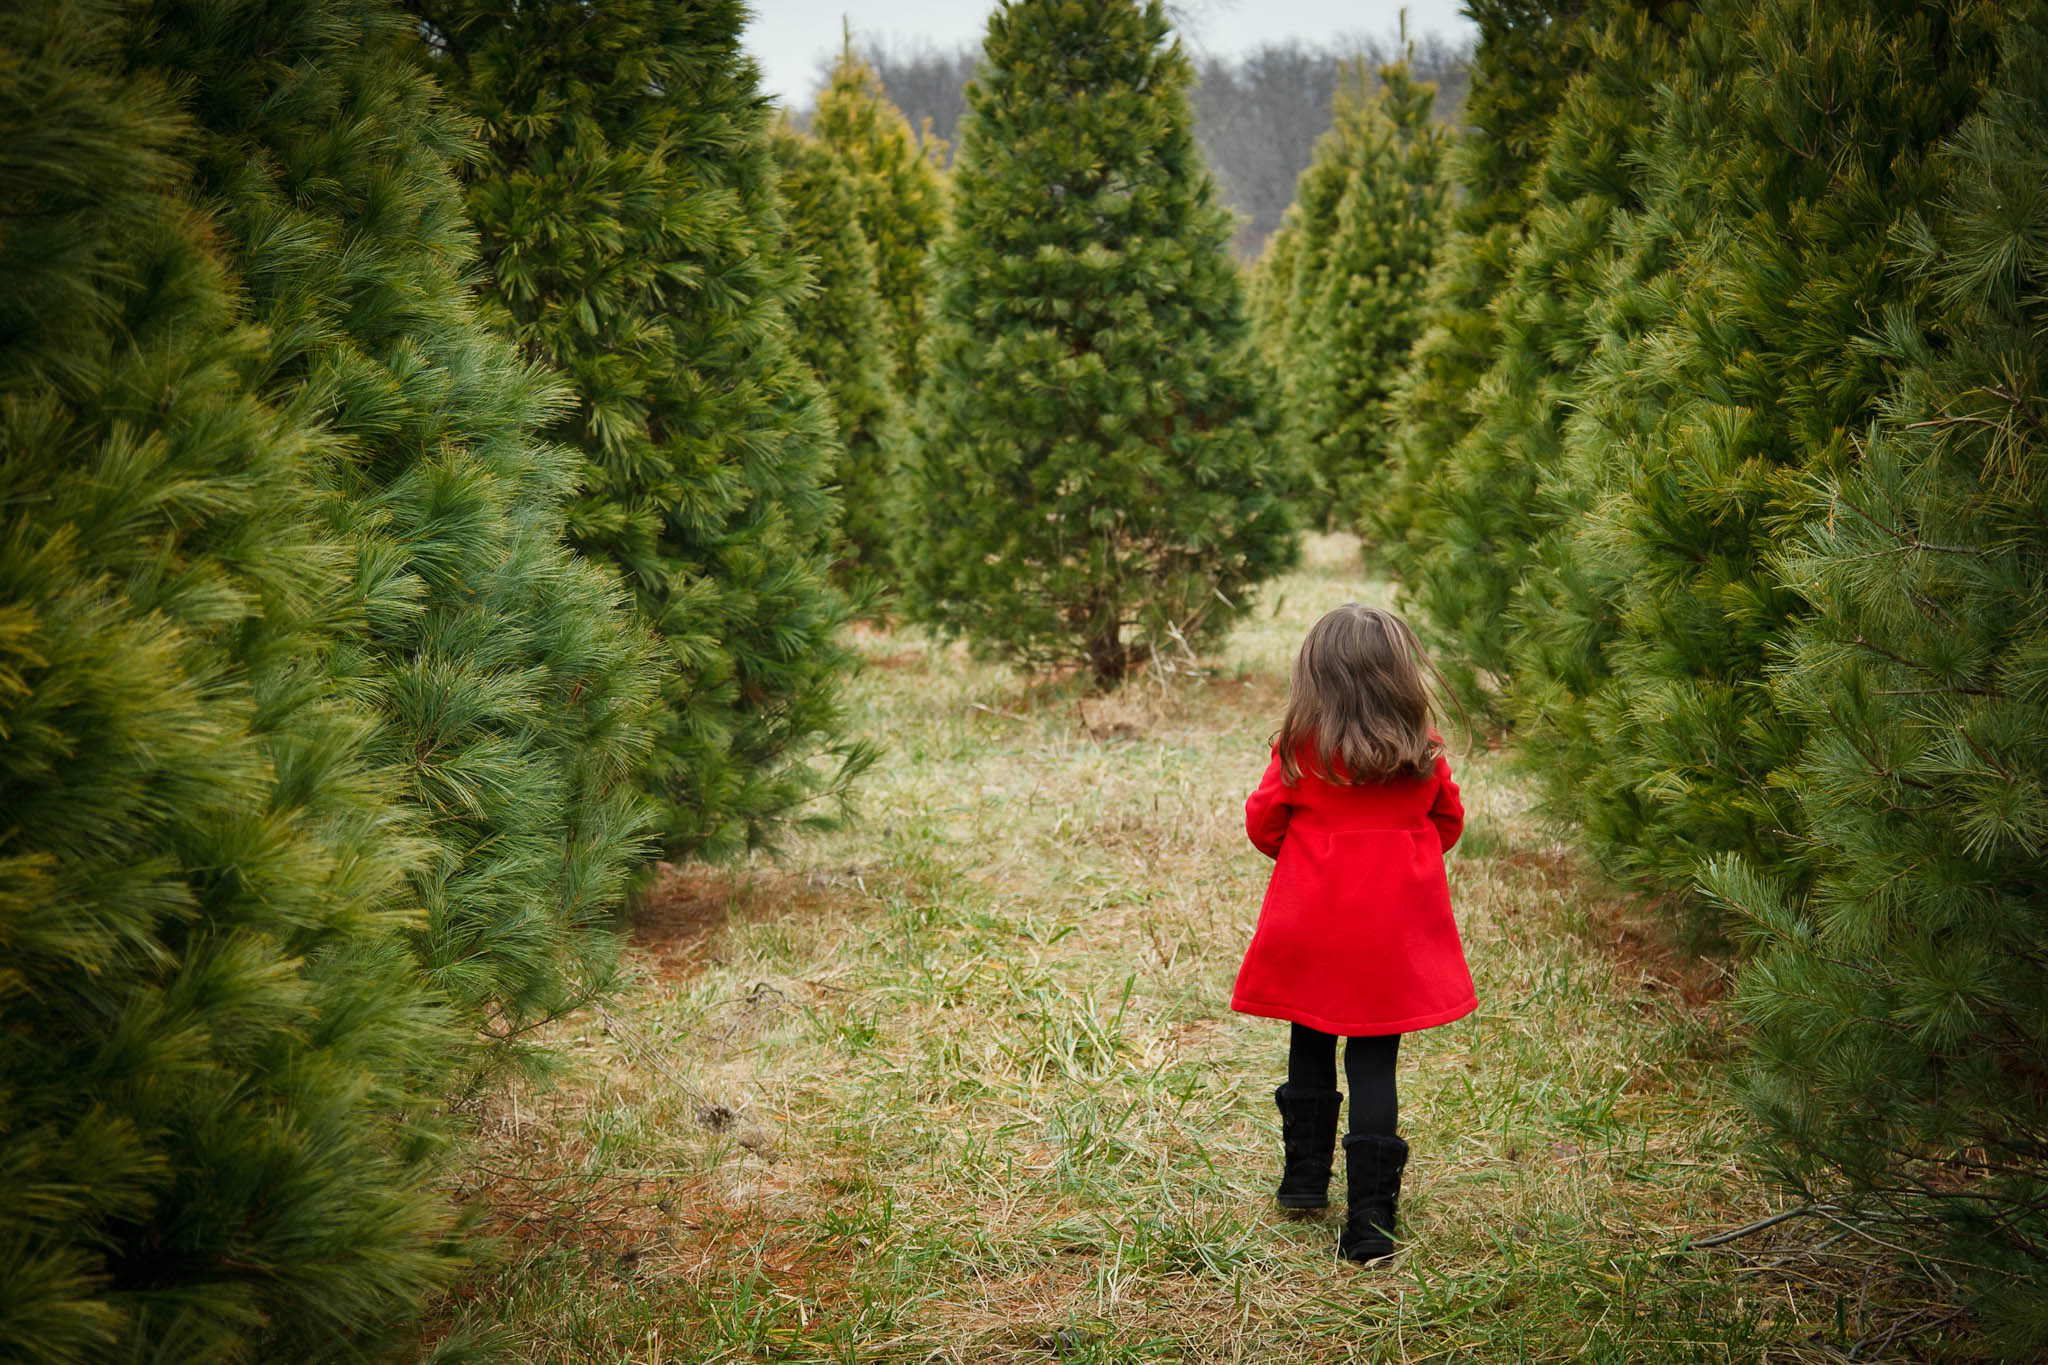 Cut Your Own Christmas Tree Near Me.Cutting Down Your Own Christmas Tree In The Pittsburgh Area